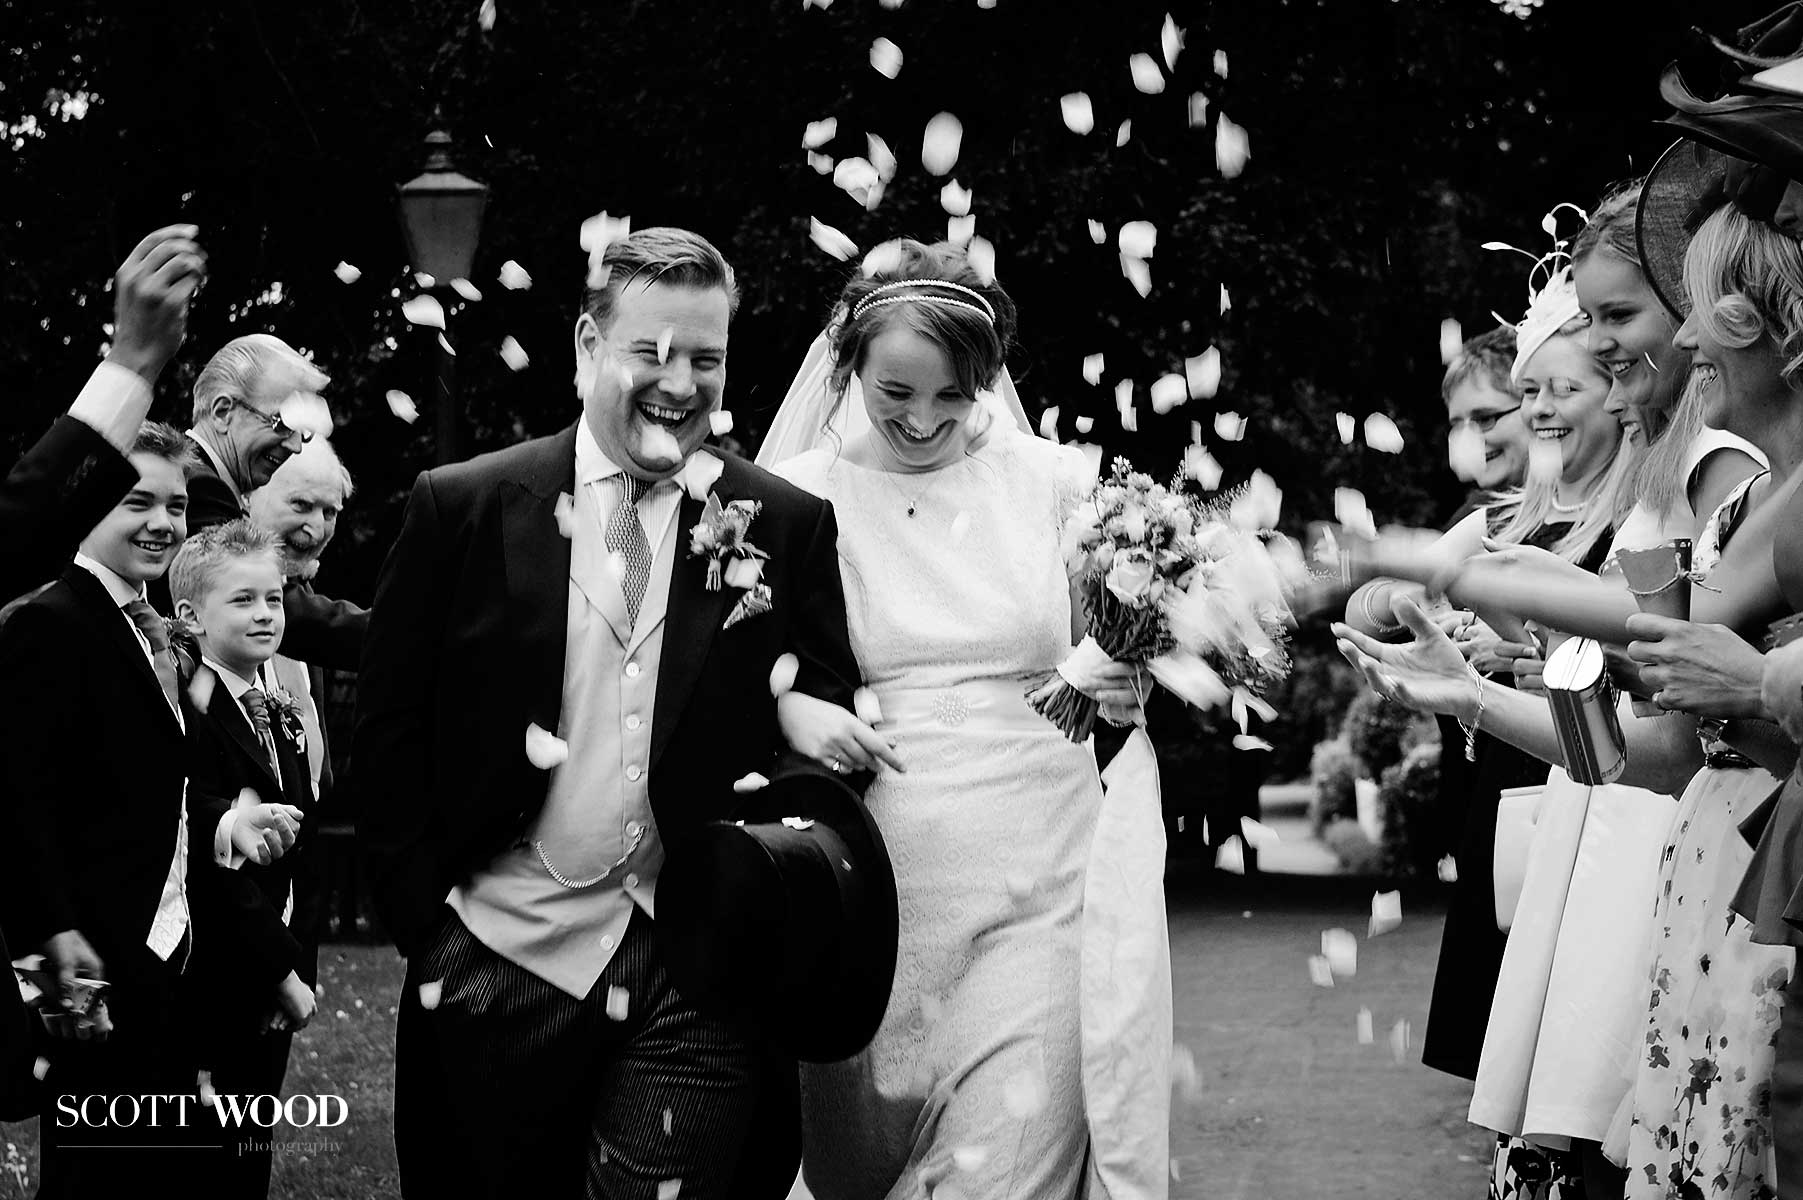 Best wedding photographers in united kingdom: Scott-Wood Photography